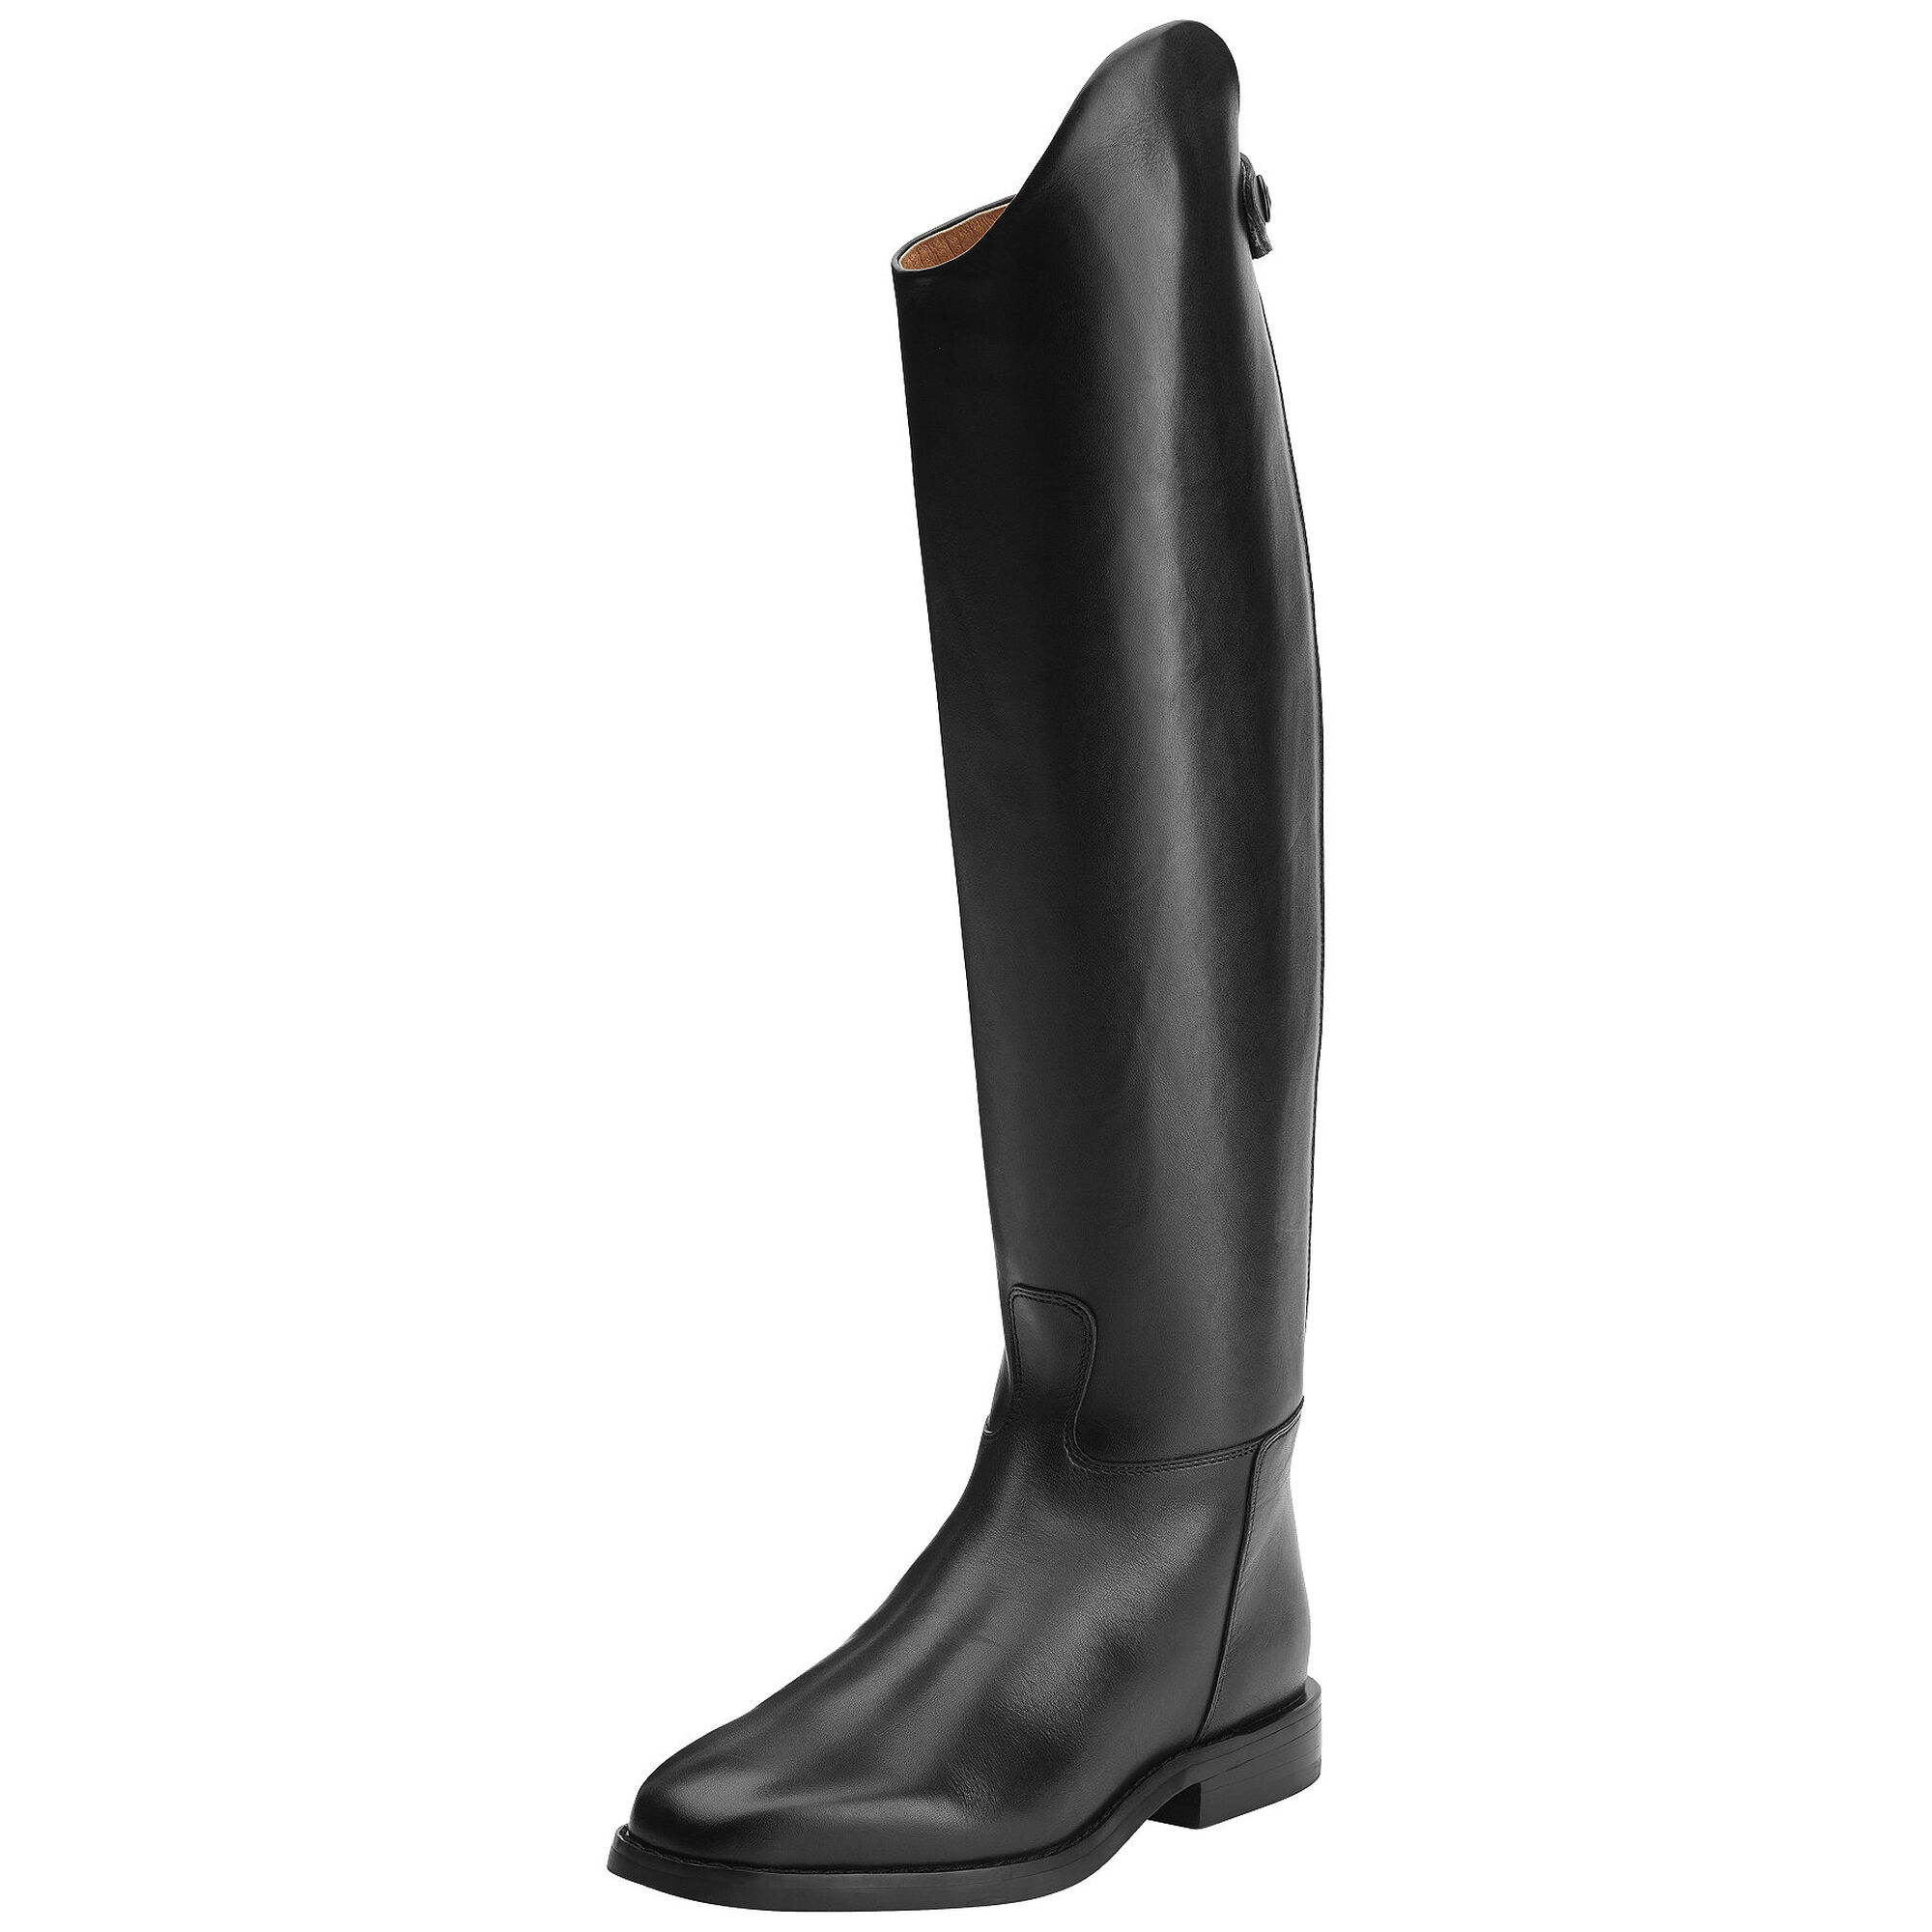 c2d067ef57d Images. Cadence Dressage Zip Tall Riding Boot